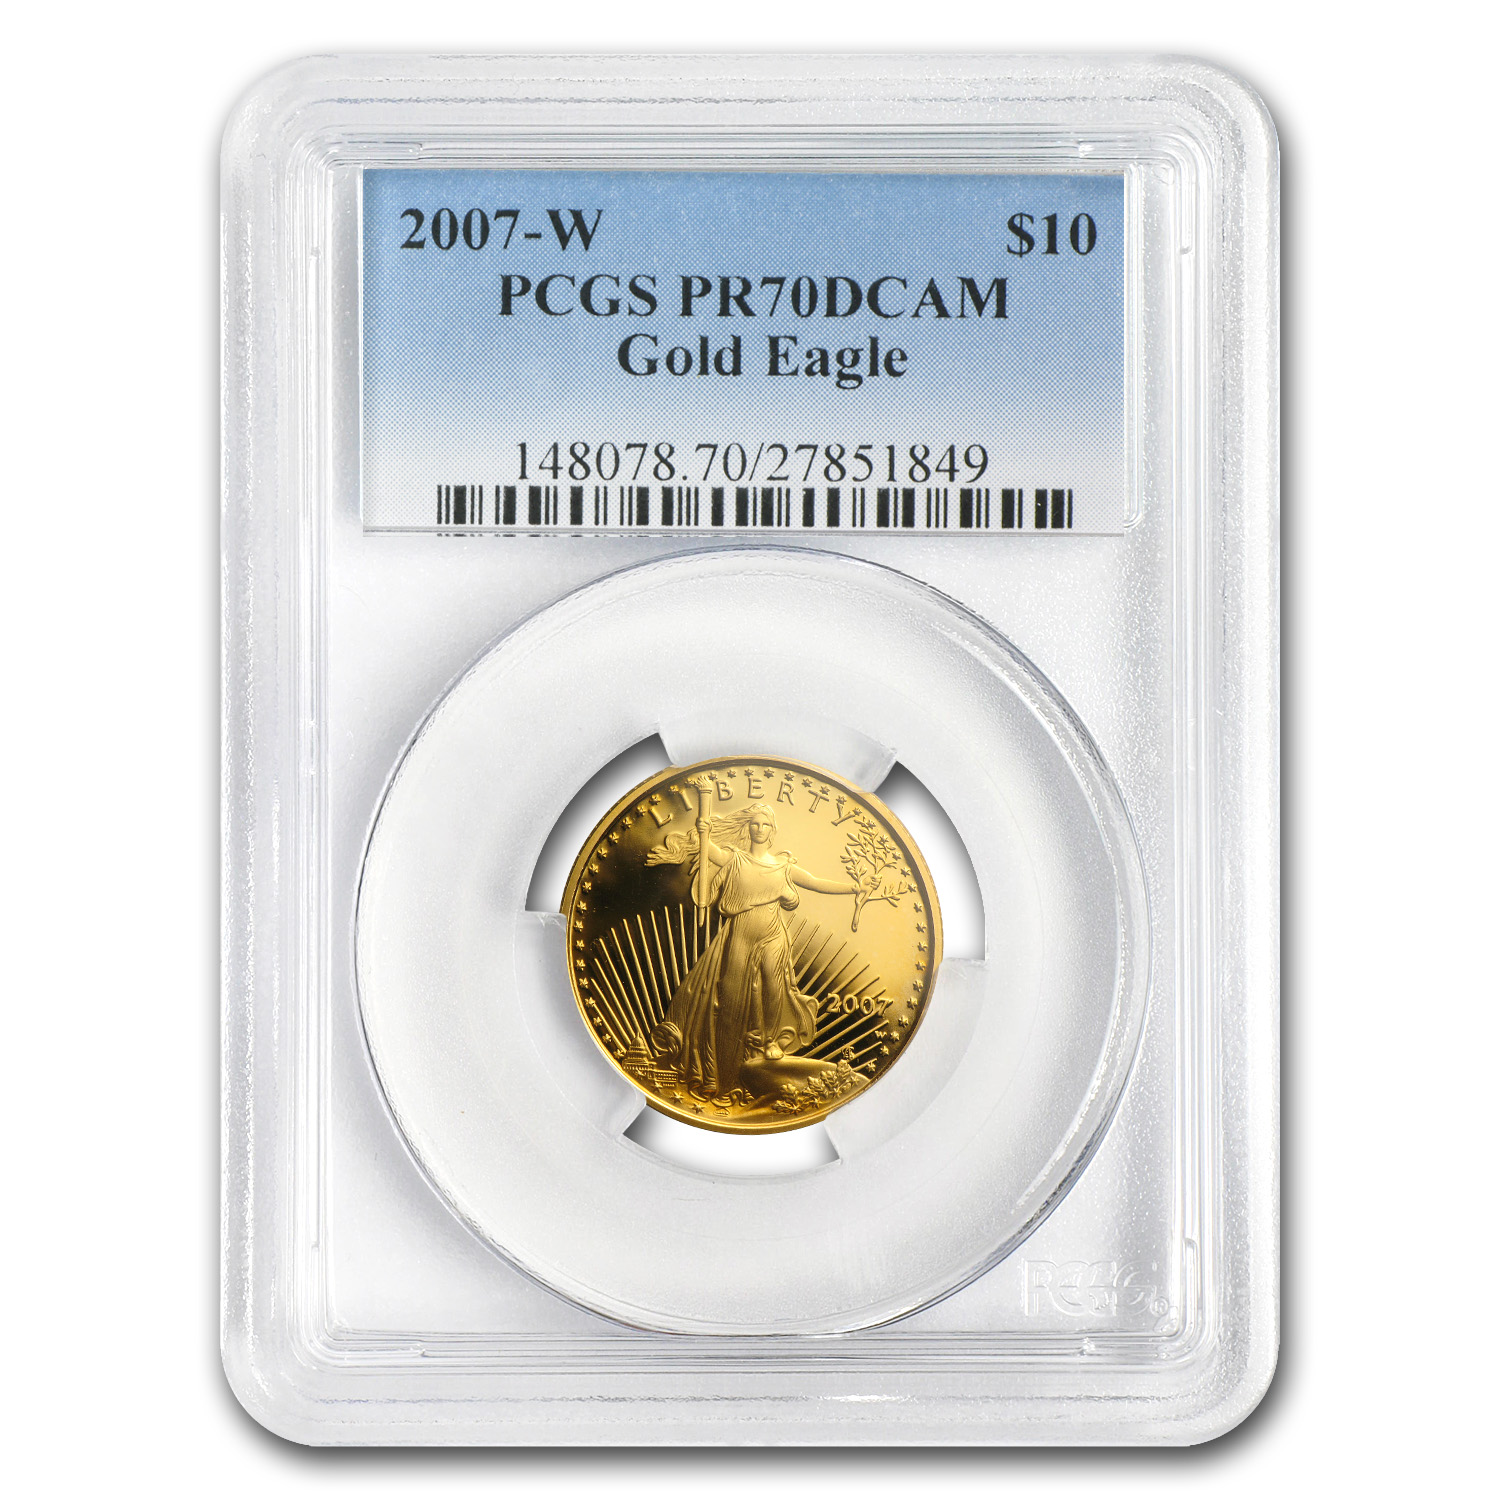 2007-W 1/4 oz Proof Gold American Eagle PR-70 PCGS